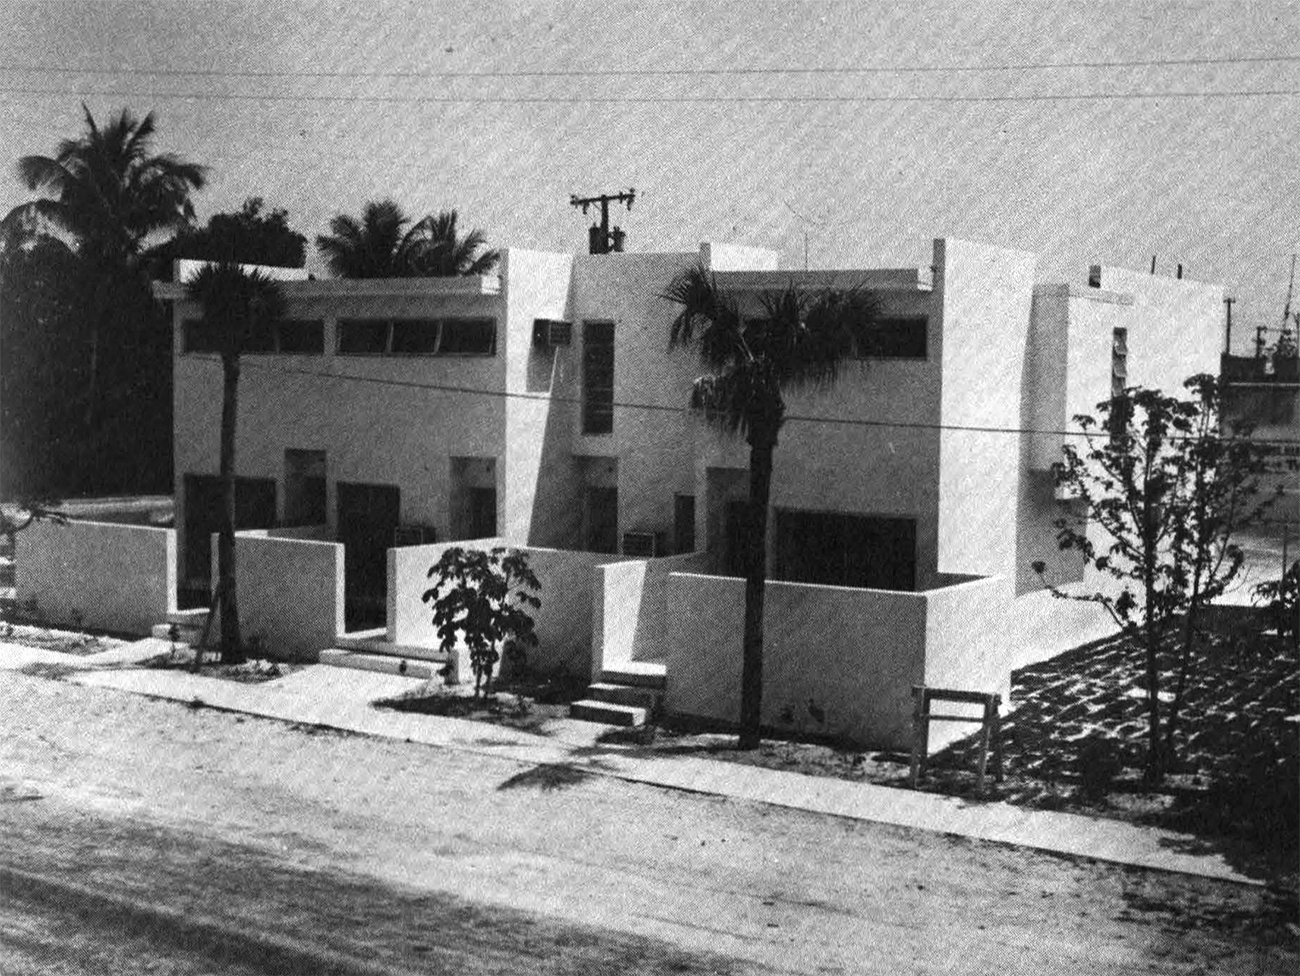 New 2- and 4-bedroom affordable townhouses nearing completion in Florida, 1971.